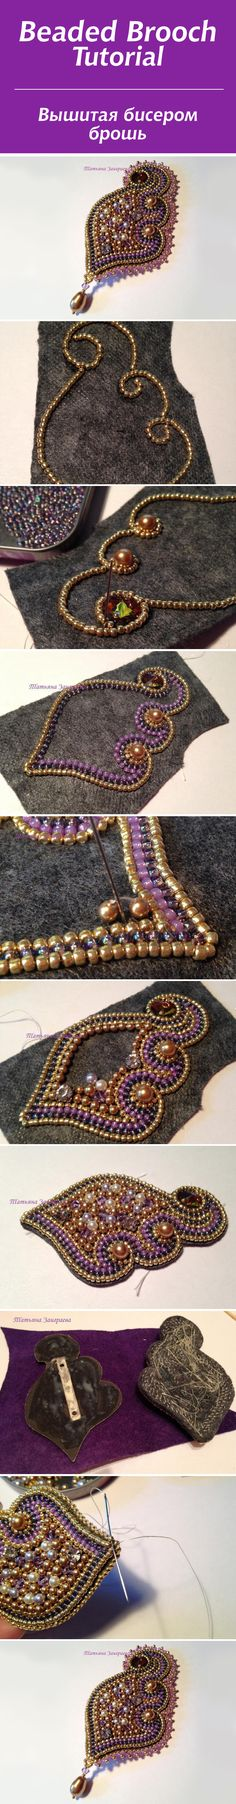 Idea for making beaded brooch.